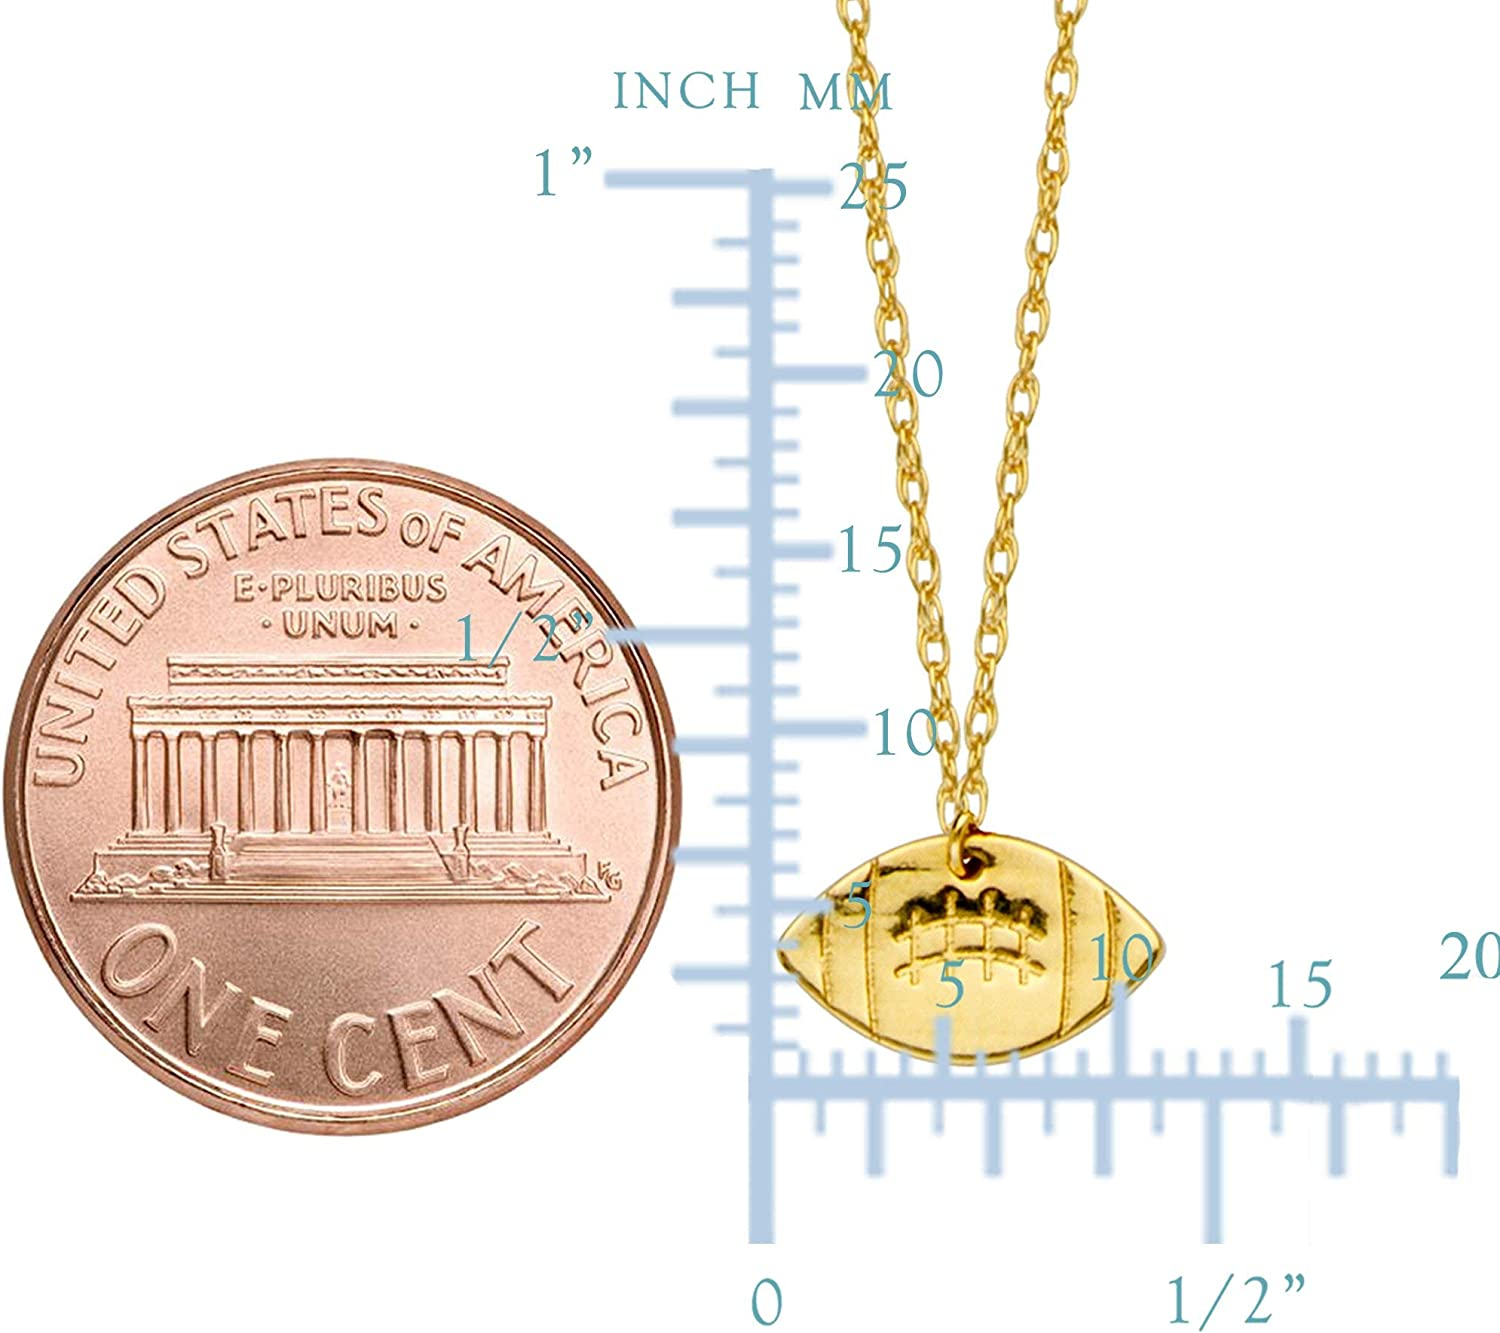 14K Yellow Gold Italian Maniac Pendant on an Adjustable 14K Yellow Gold Chain Necklace